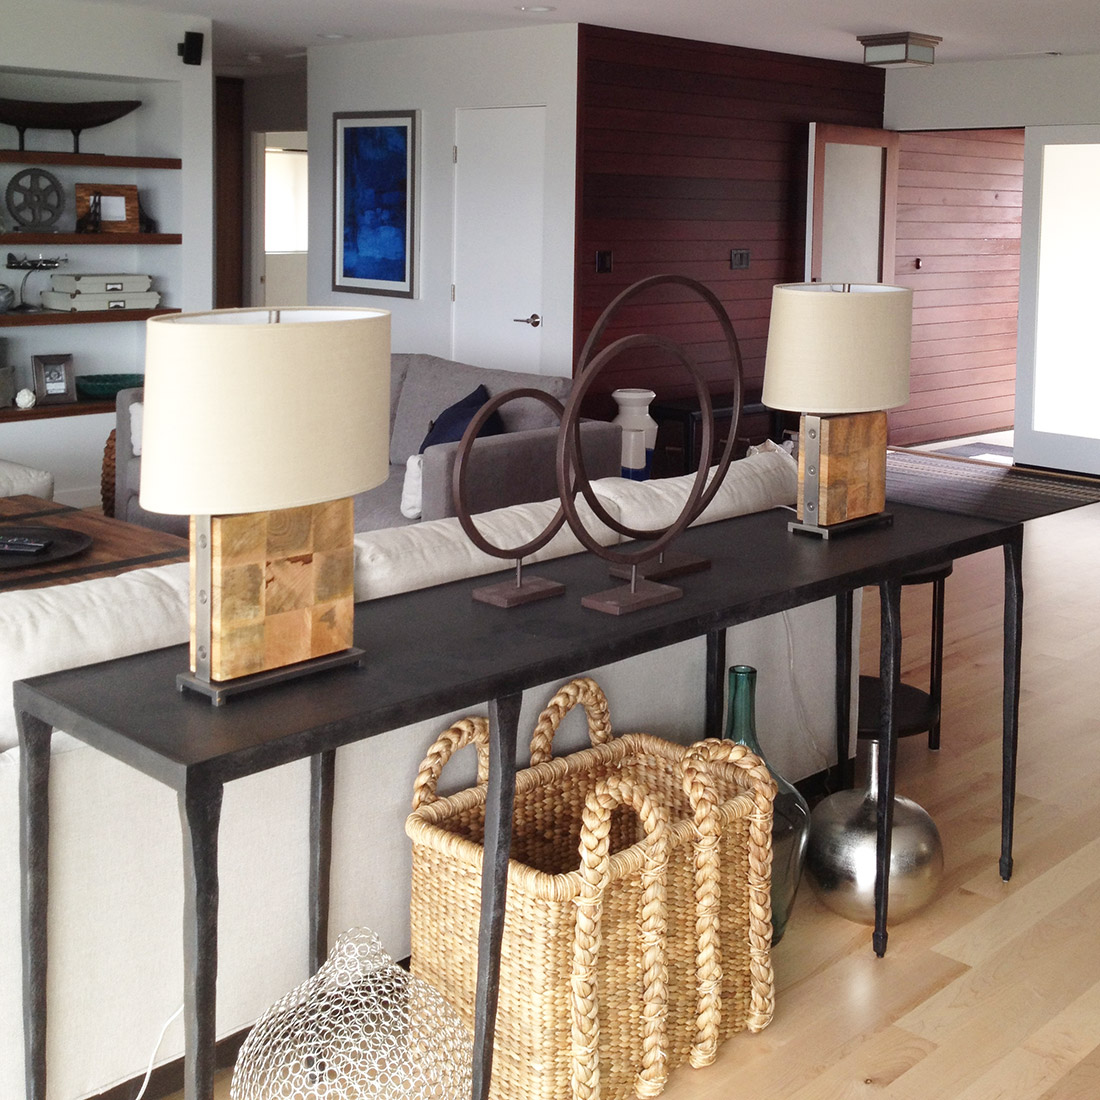 modern living room with a sofa table in black metal and wood base lamps with decor display basket and vases and ring objects design by sara bates interior design